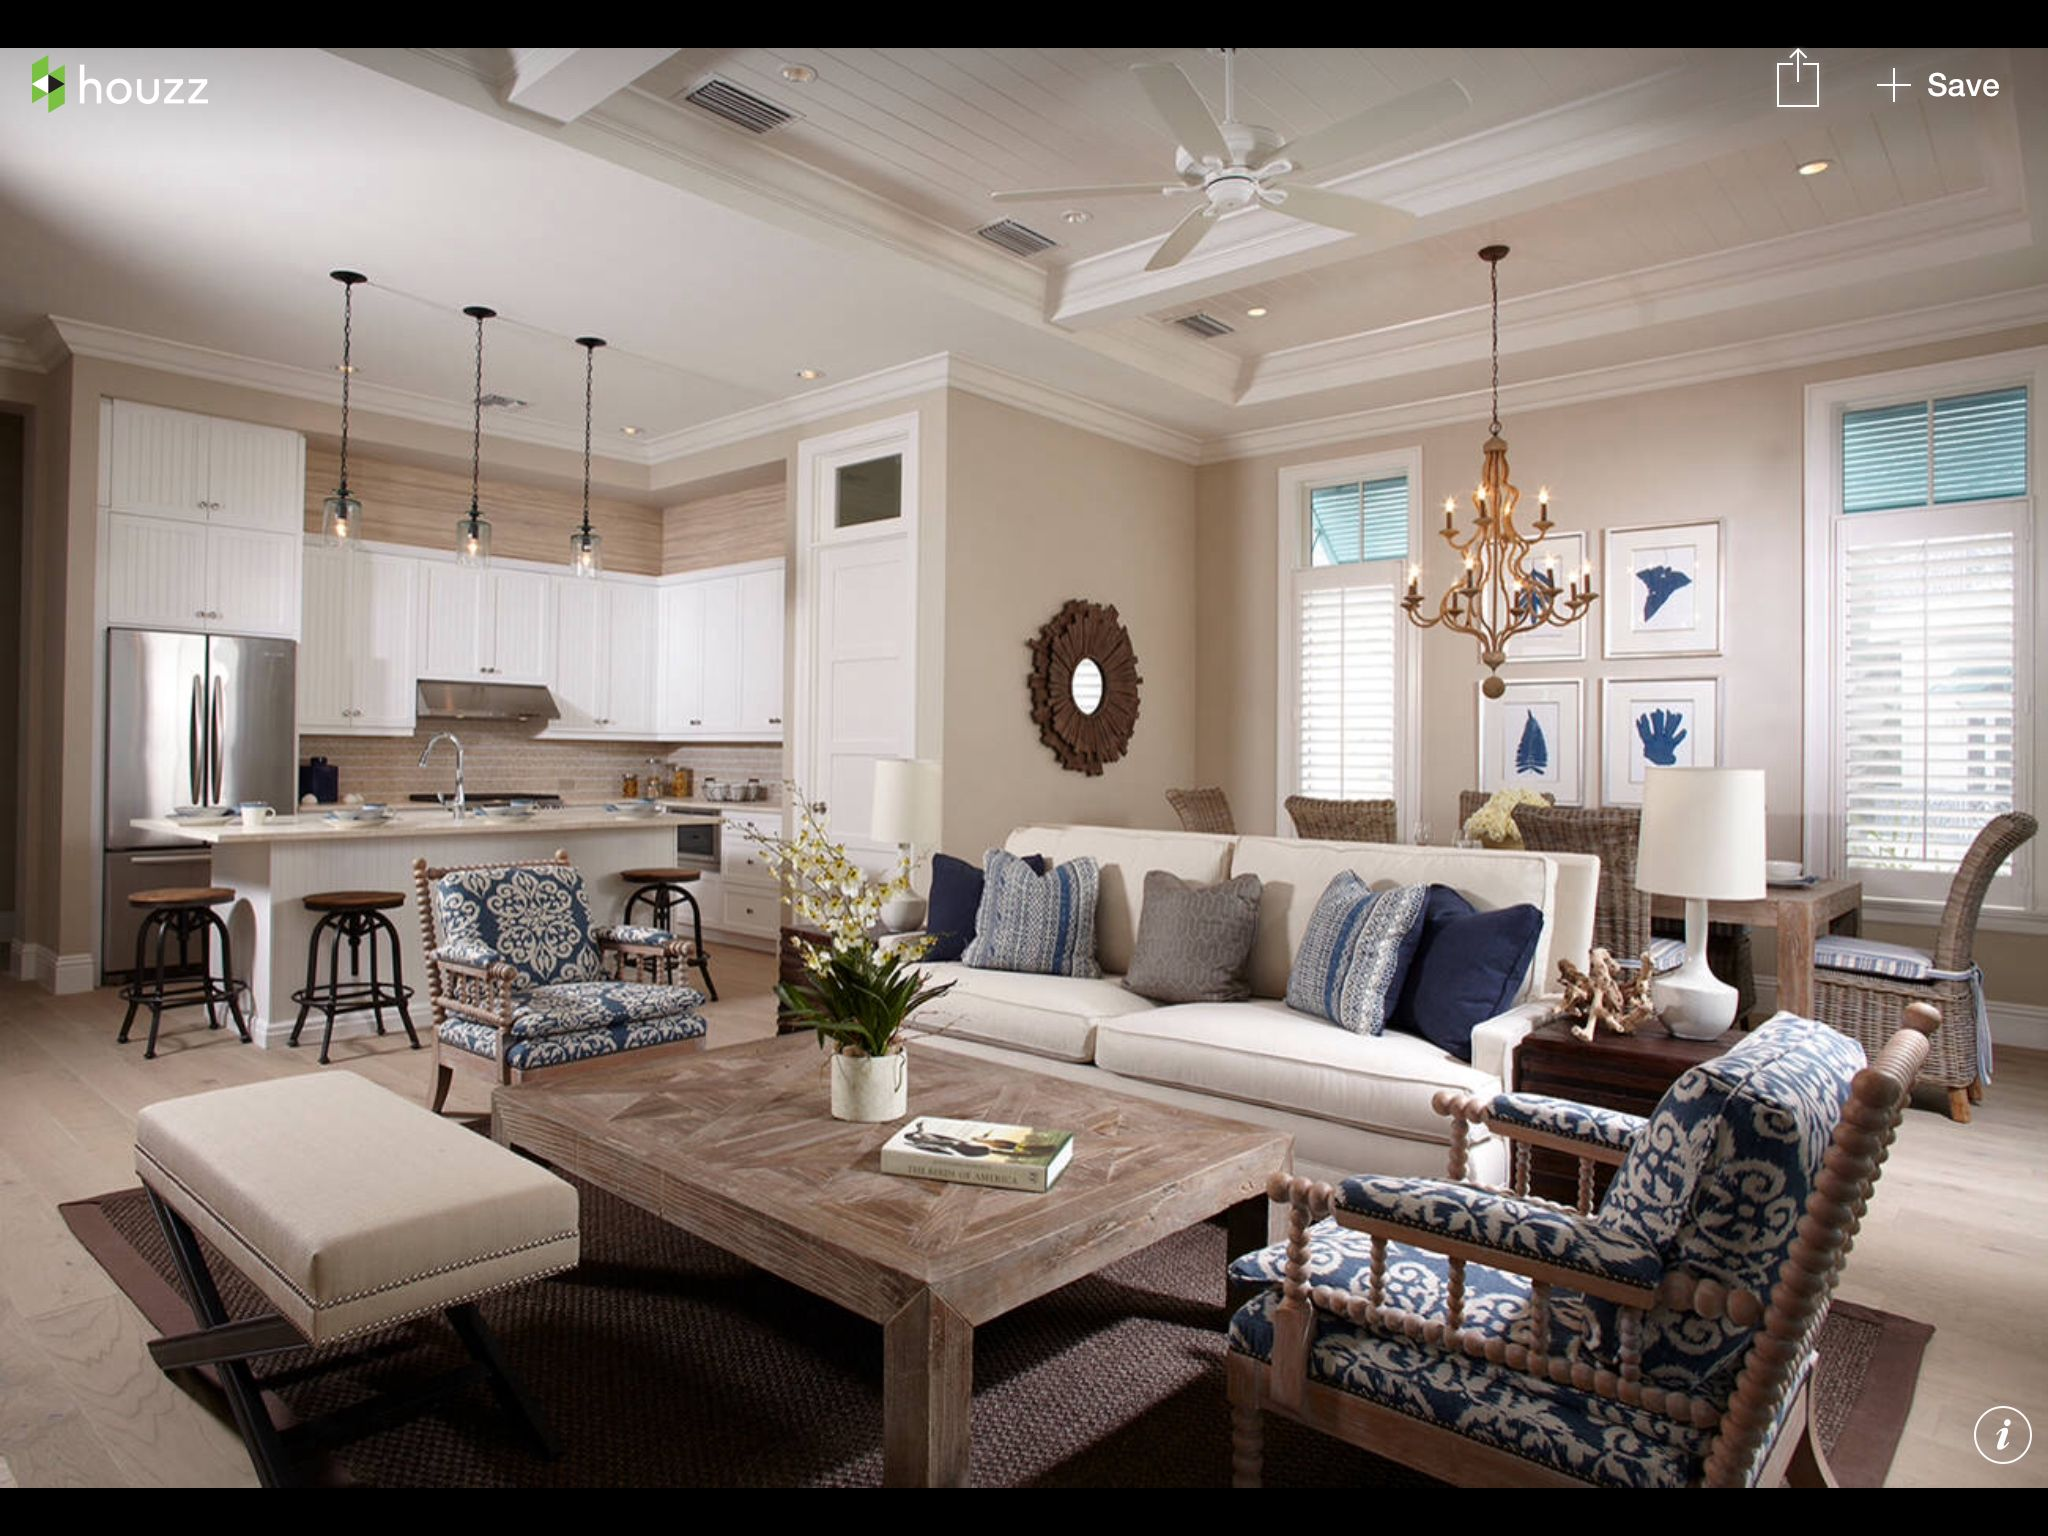 Living Room Design Houzz Amusing Living Room Inspiration From Houzz  House Inspiration  Pinterest Decorating Inspiration